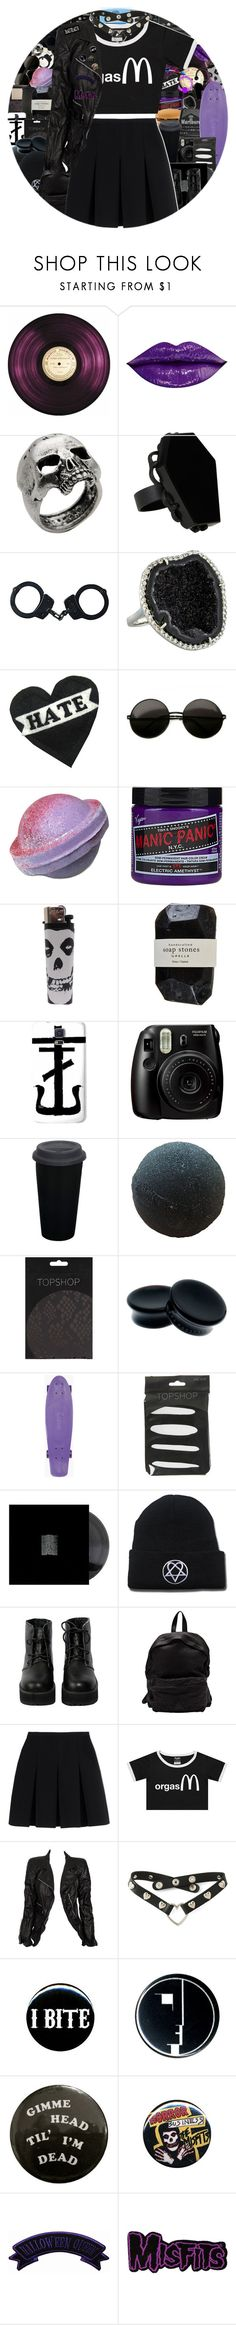 """o r g a s M"" by chemicalfallout249 ❤ liked on Polyvore featuring CASSETTE, John Richmond, Hot Topic, Kimberly McDonald, Manic Panic NYC, Cassia, Fujifilm, Topshop, The WhitePepper and Officine Creative"